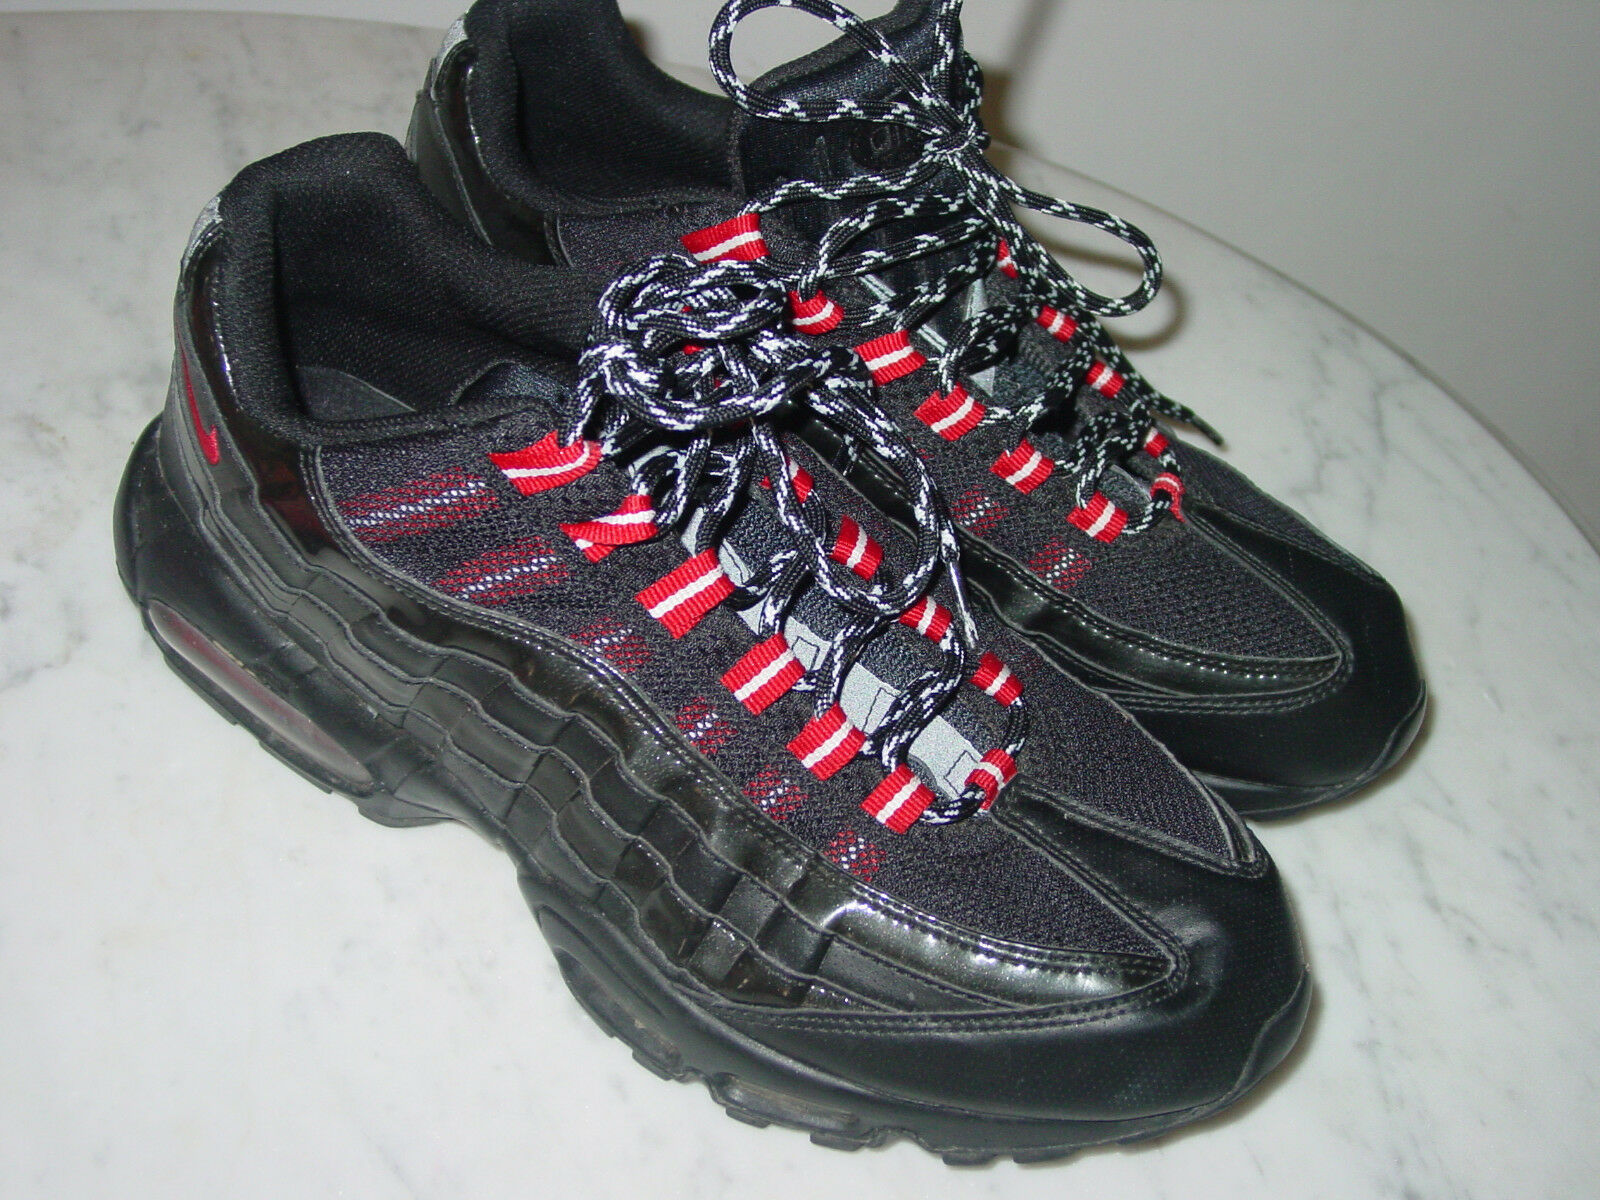 2010 Mens Nike Air Max 95 Black/Varsity Red Patent Leather Running Shoes Size 11